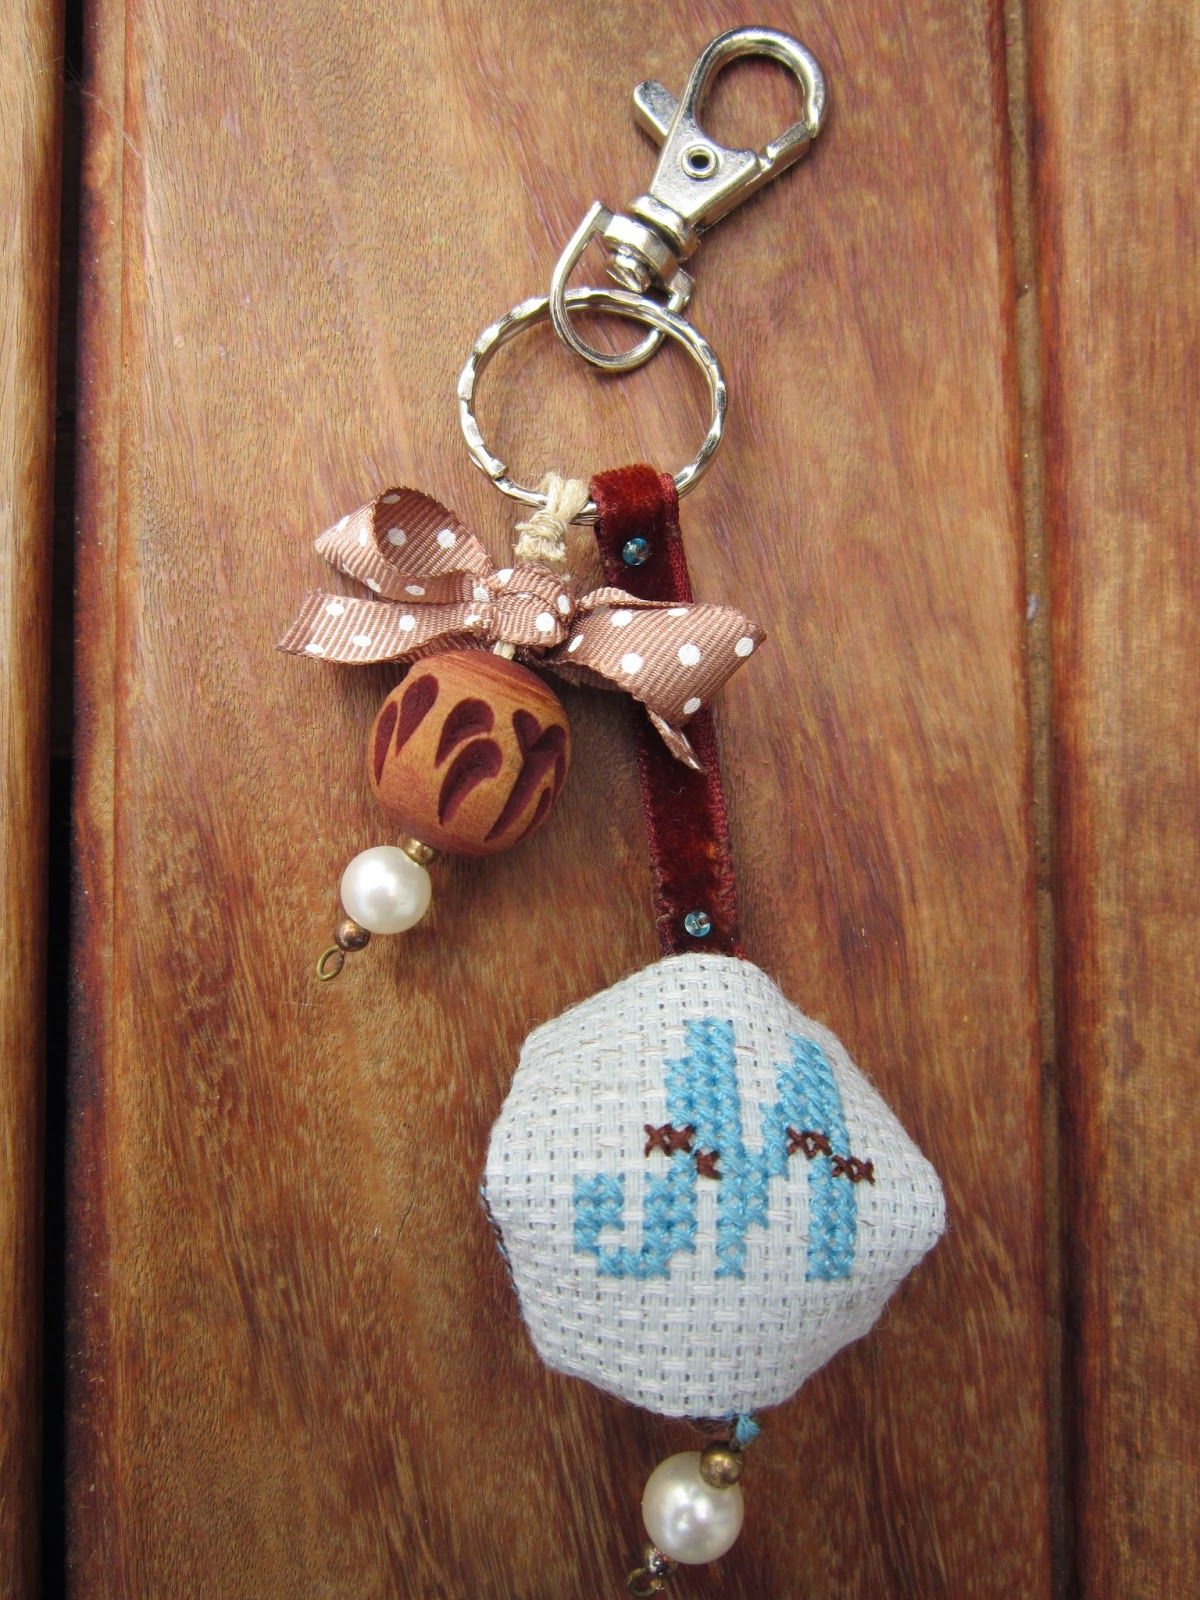 llavero, porte clefs, key holder, biscornu, punto cruz, point croix, cross stitch